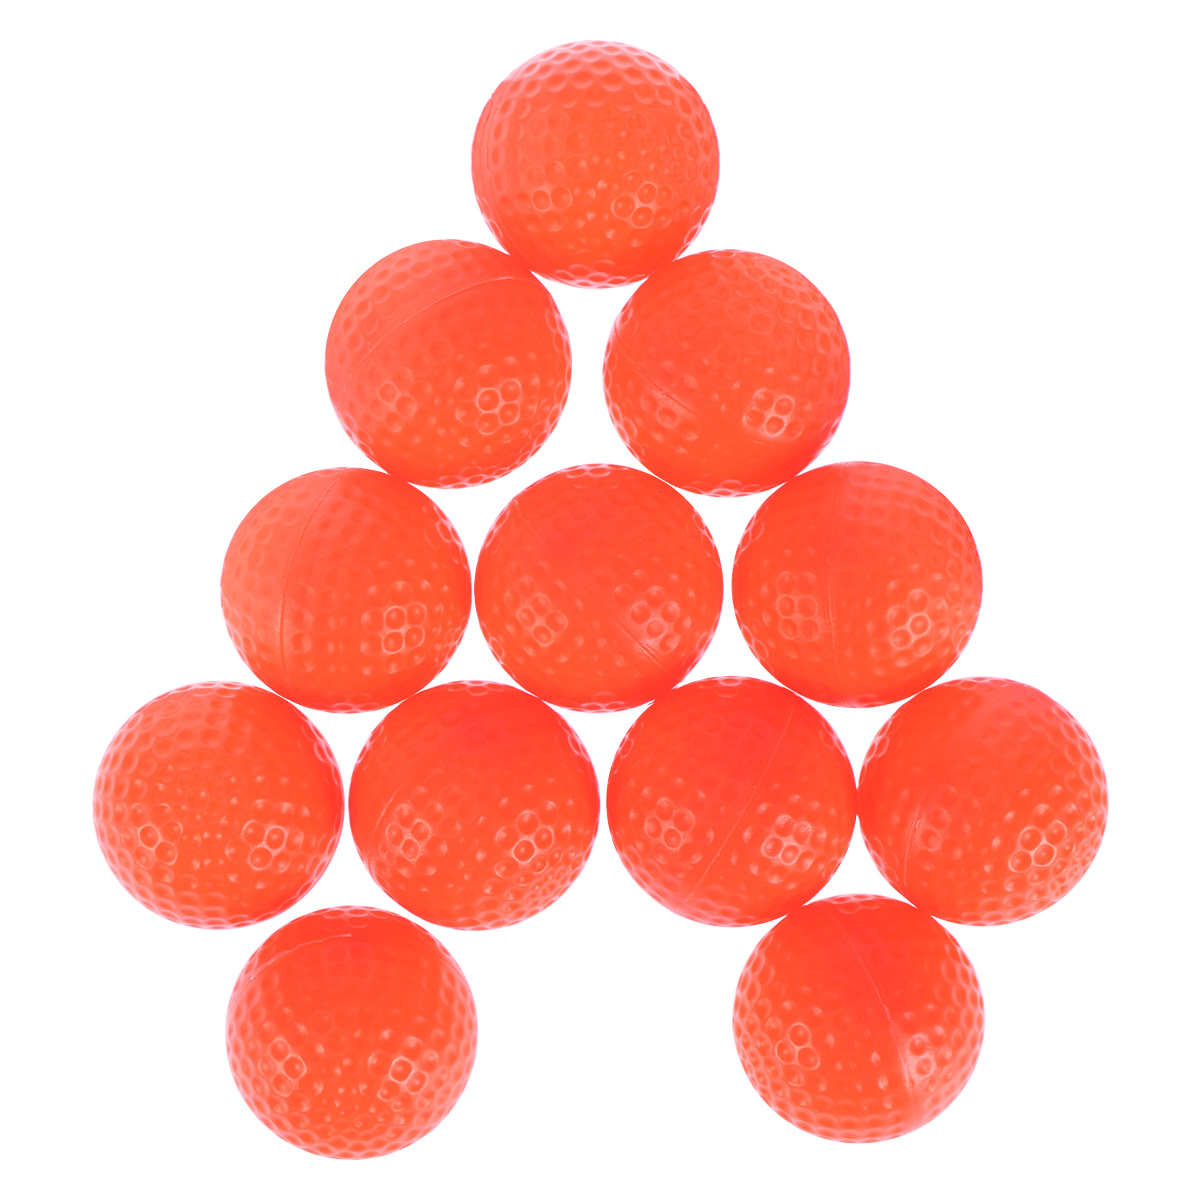 12pcs Practical Exercise Field Balls Indoor Practice Training Aids PU Foam Golf Balls For Practical